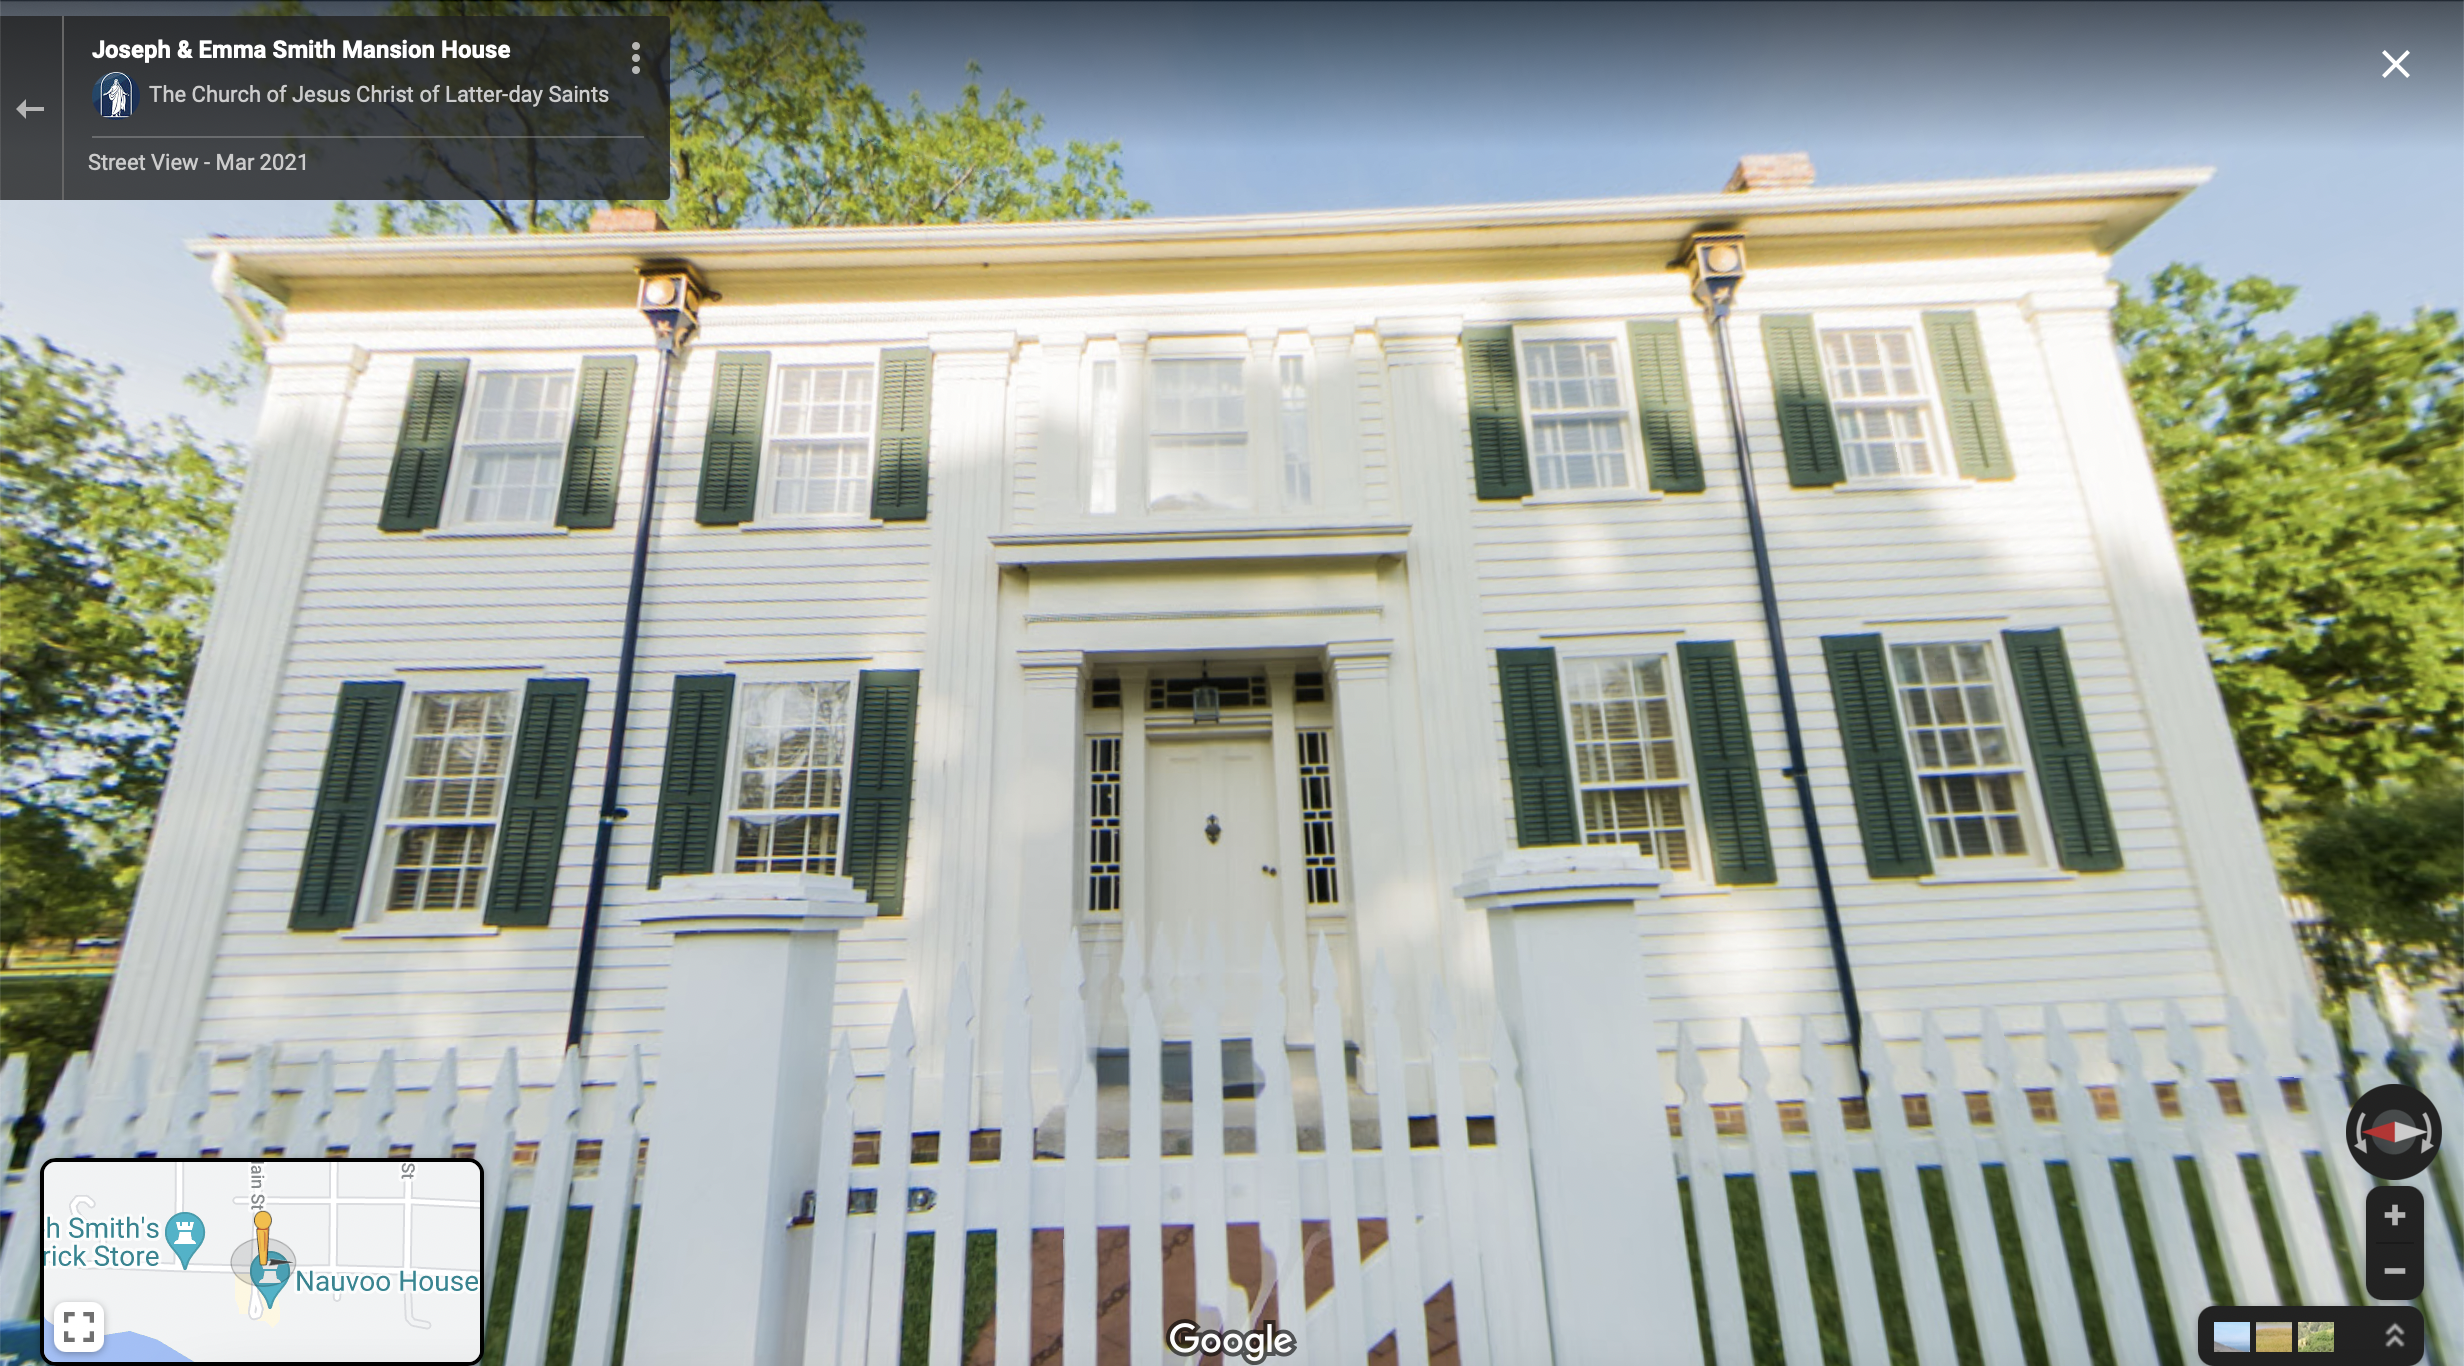 Screenshot of the Google Maps 360 view of the Mansion House in Nauvoo